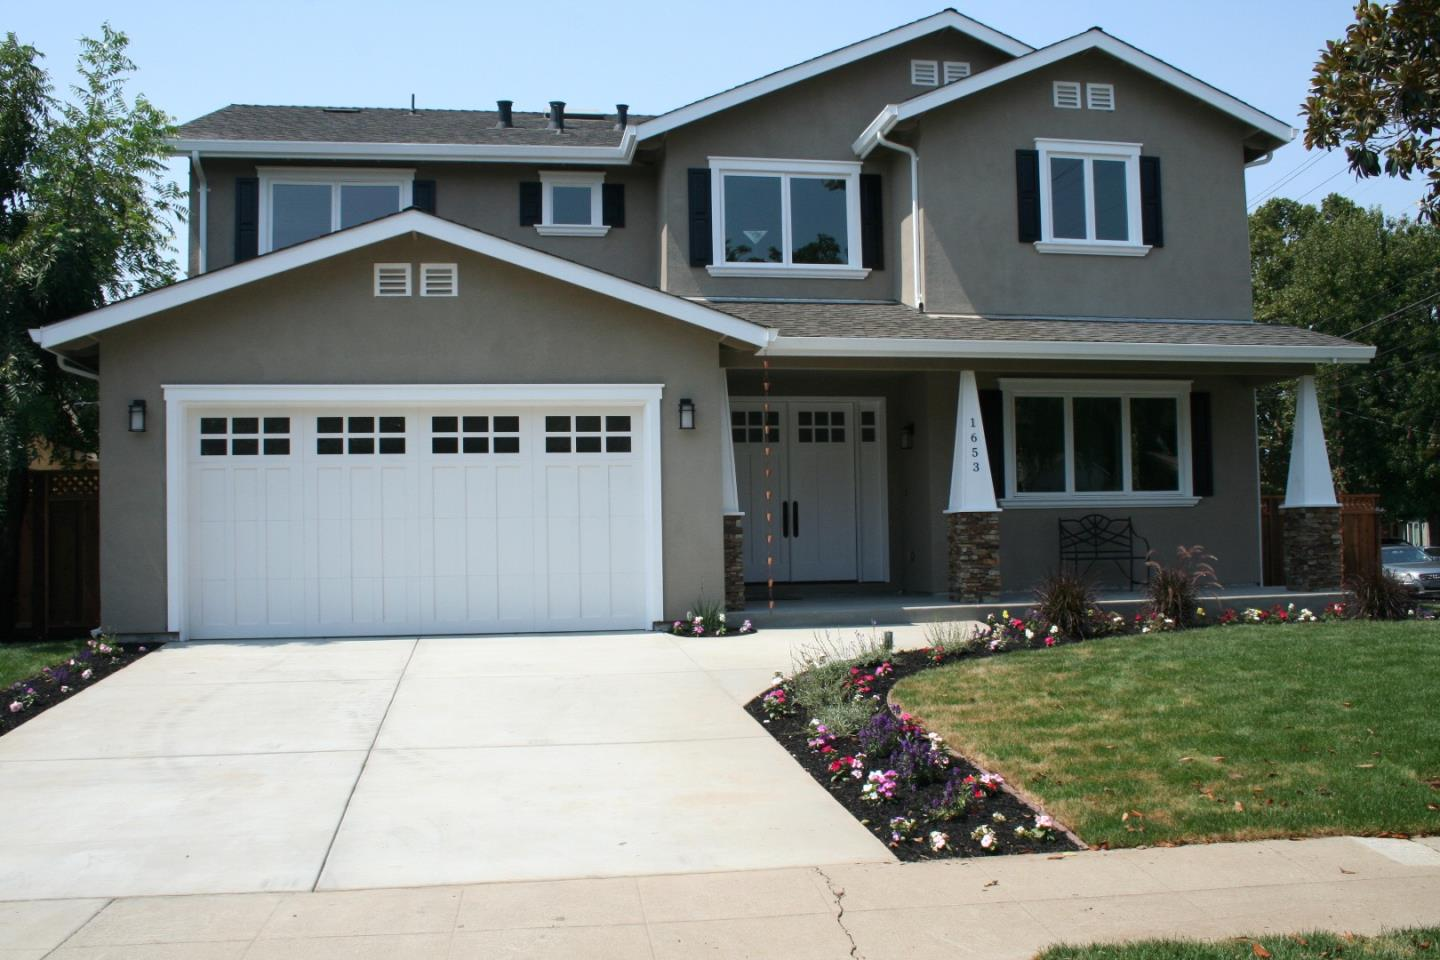 Single Family Home for Sale at 1653 Arbor Drive San Jose, California 95125 United States